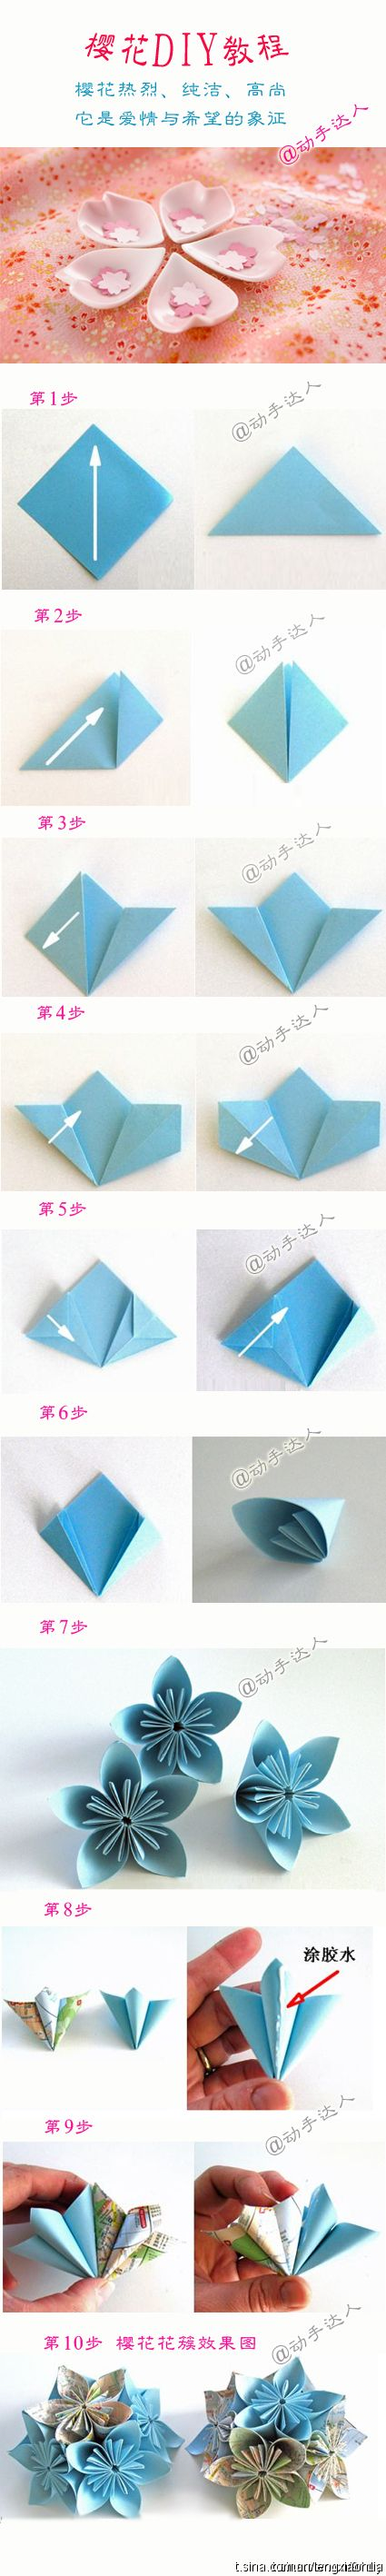 1324 best paper crafts images on pinterest paper flowers craft diy paper flowers flowers diy crafts home made easy crafts craft idea crafts ideas diy ideas diy crafts diy idea do it yourself diy projects diy craft solutioingenieria Gallery